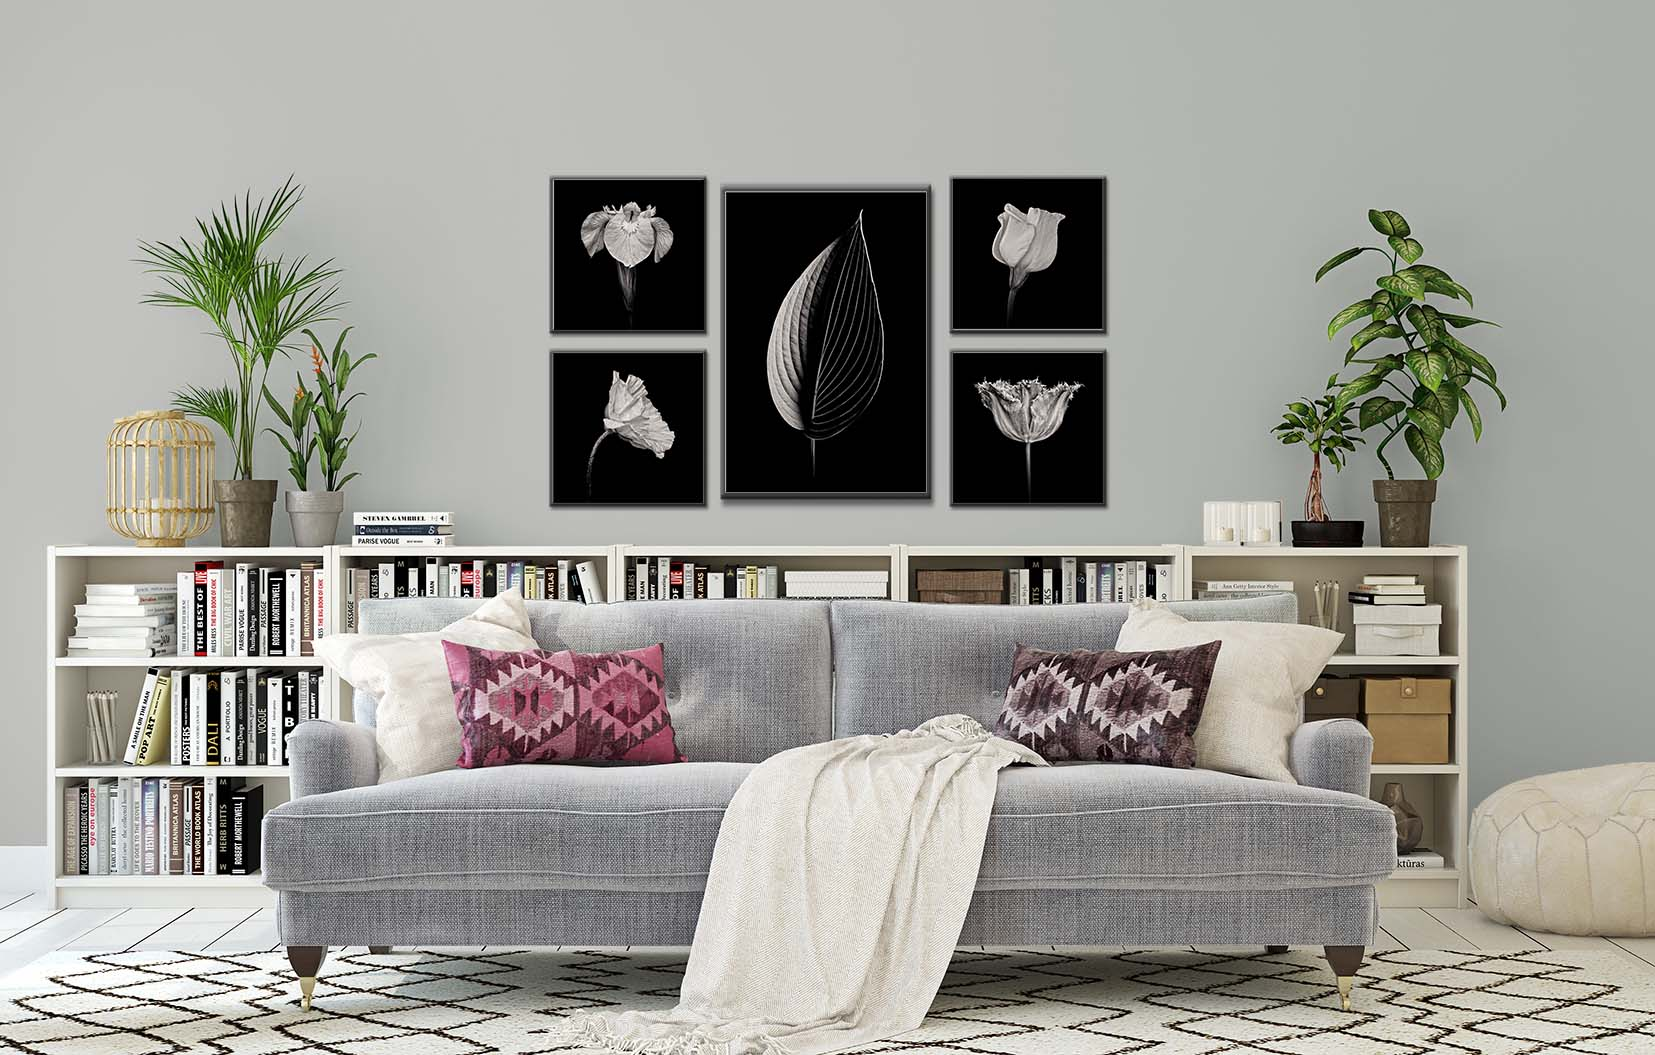 Black and white photographs of flowers and a hosta leaf shown framed and on the wall.